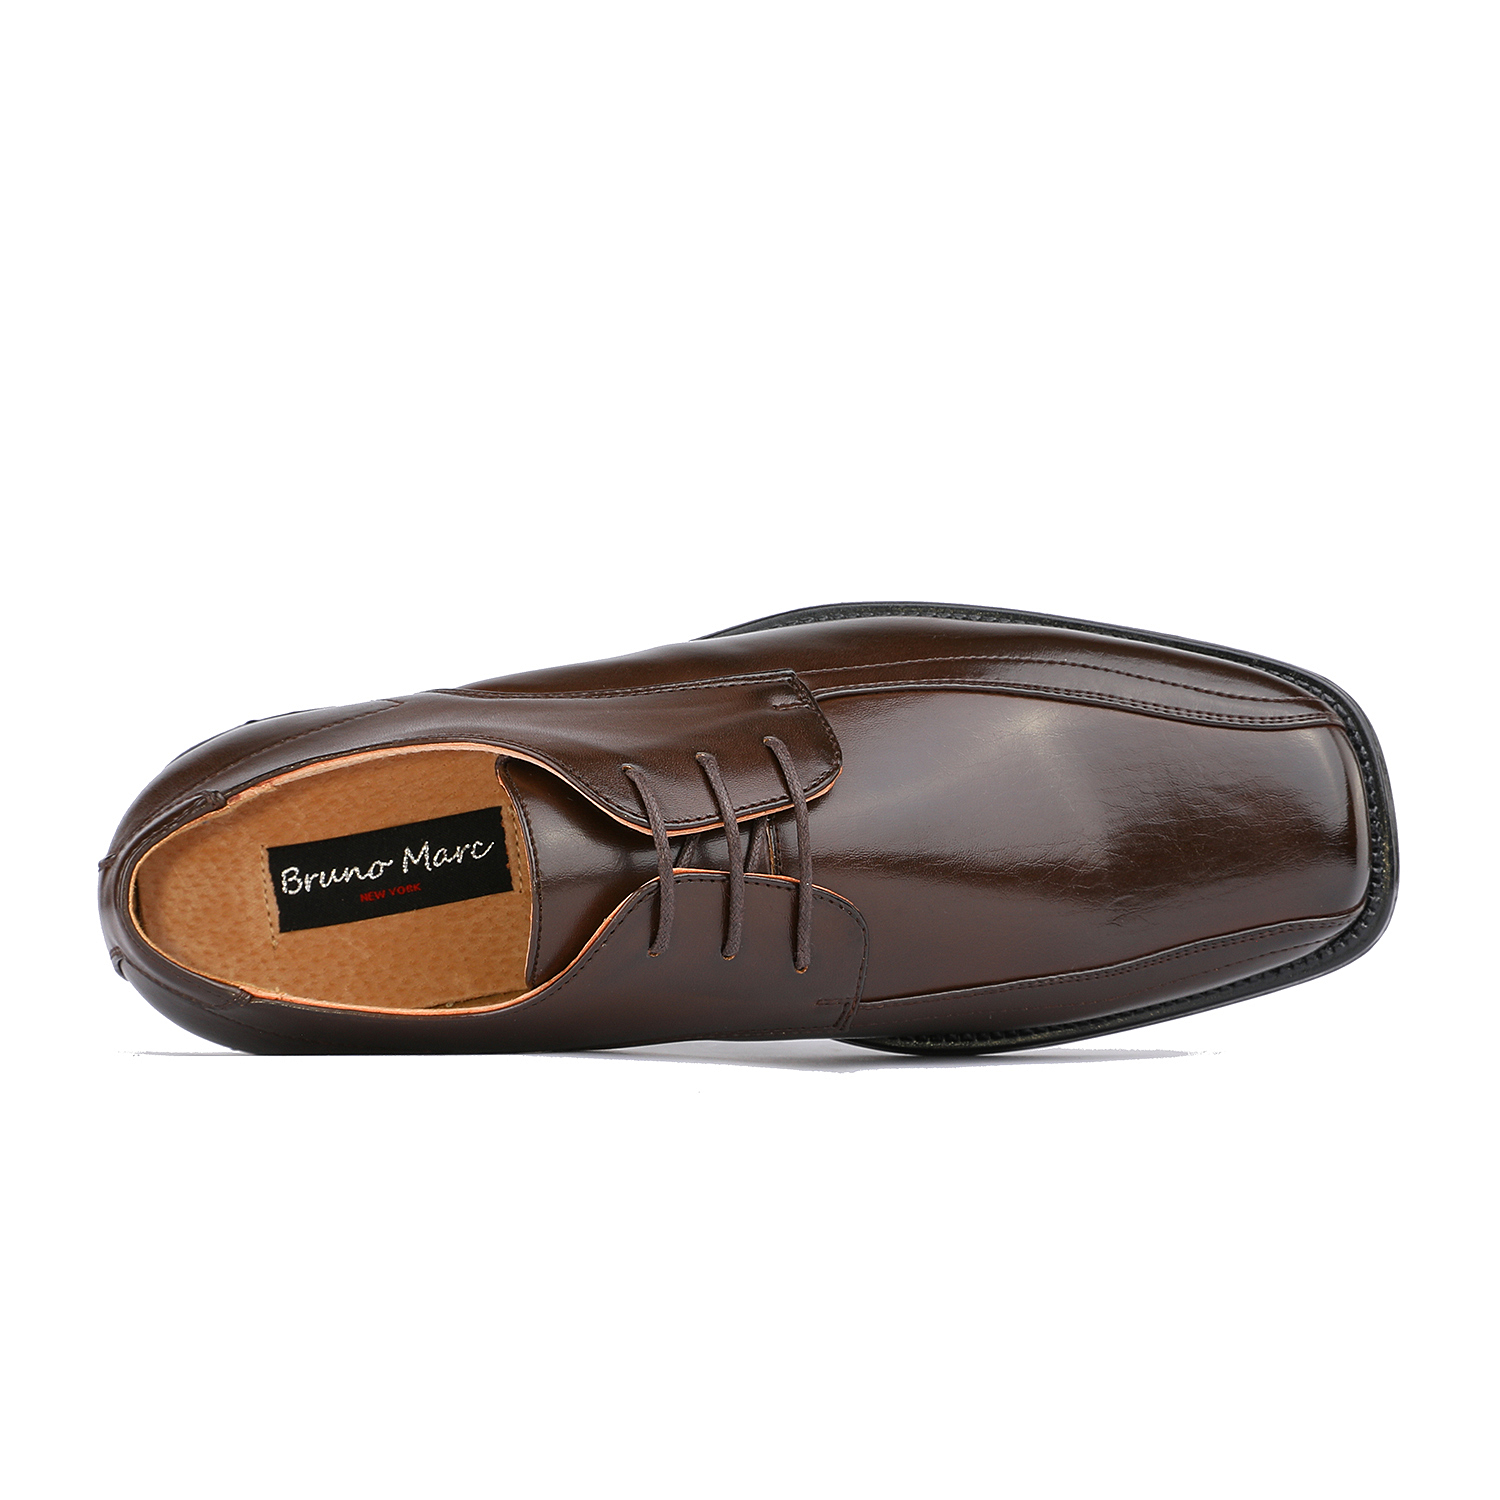 BRUNO-MARC-Men-STATE-Formal-Square-Toe-Leather-Lined-Slip-On-Dress-Loafers-Shoes thumbnail 32